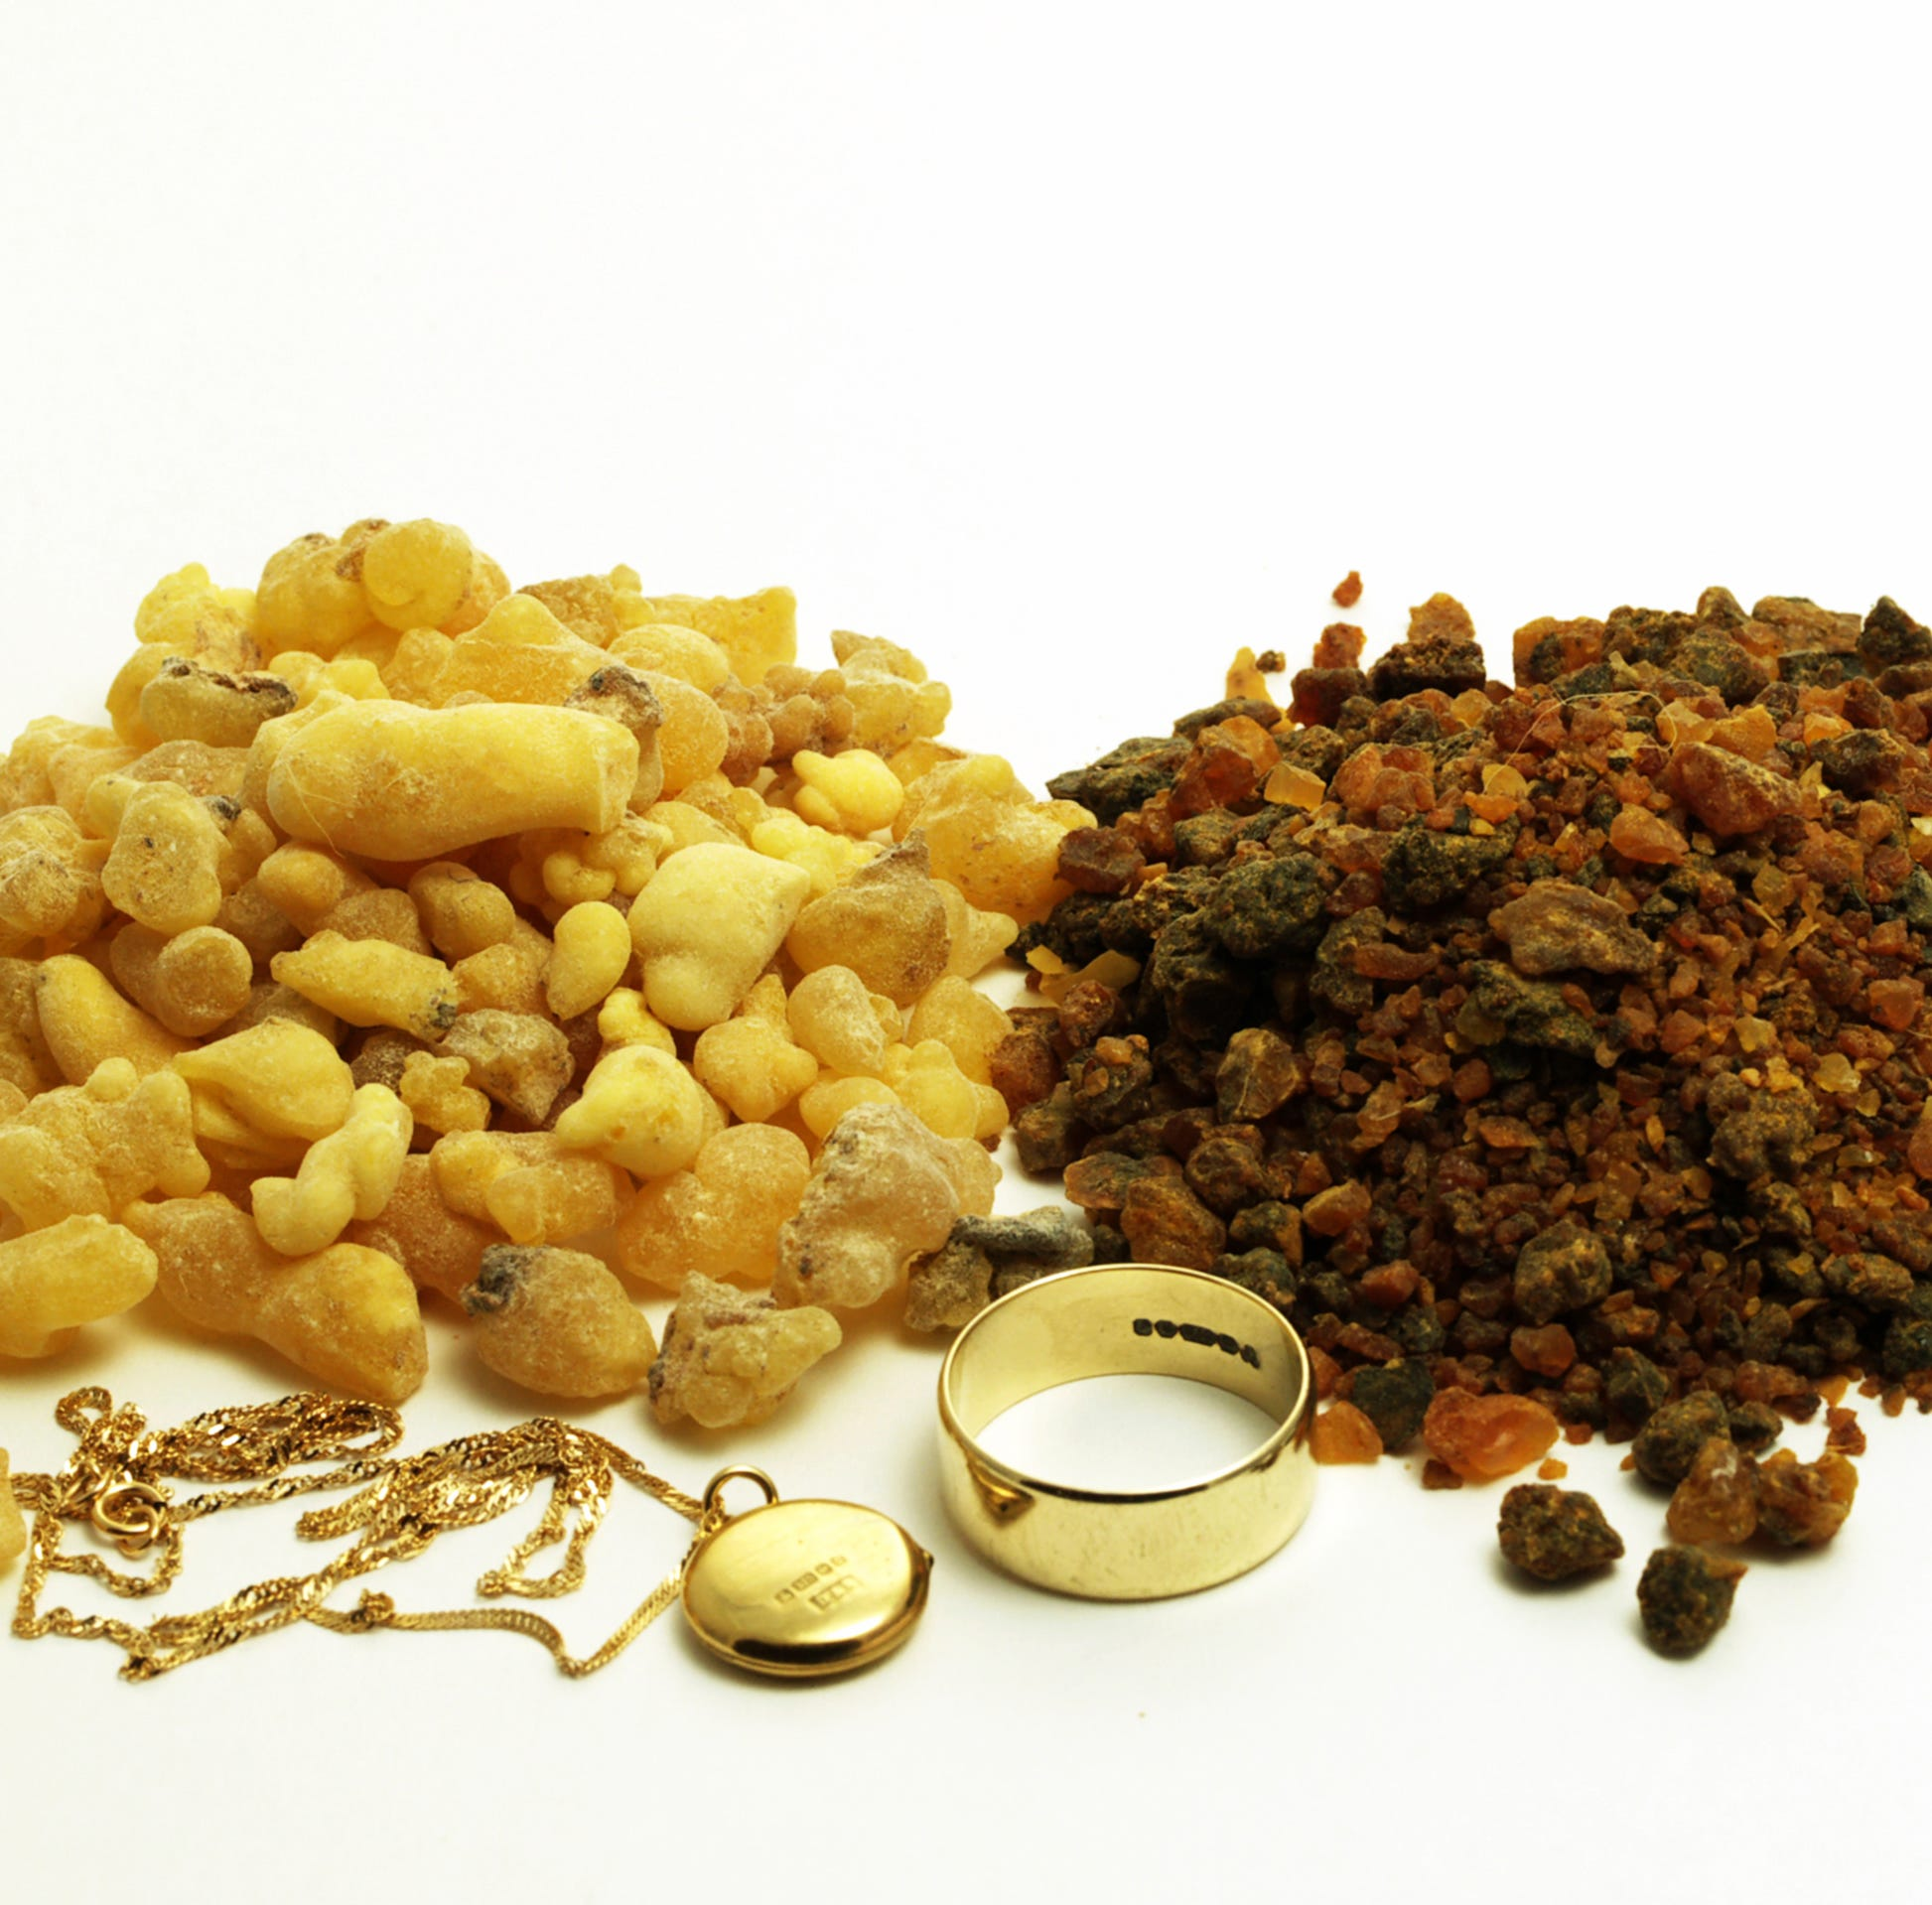 Ask the Pharmacist: Breathe easier and control pain with frankincense